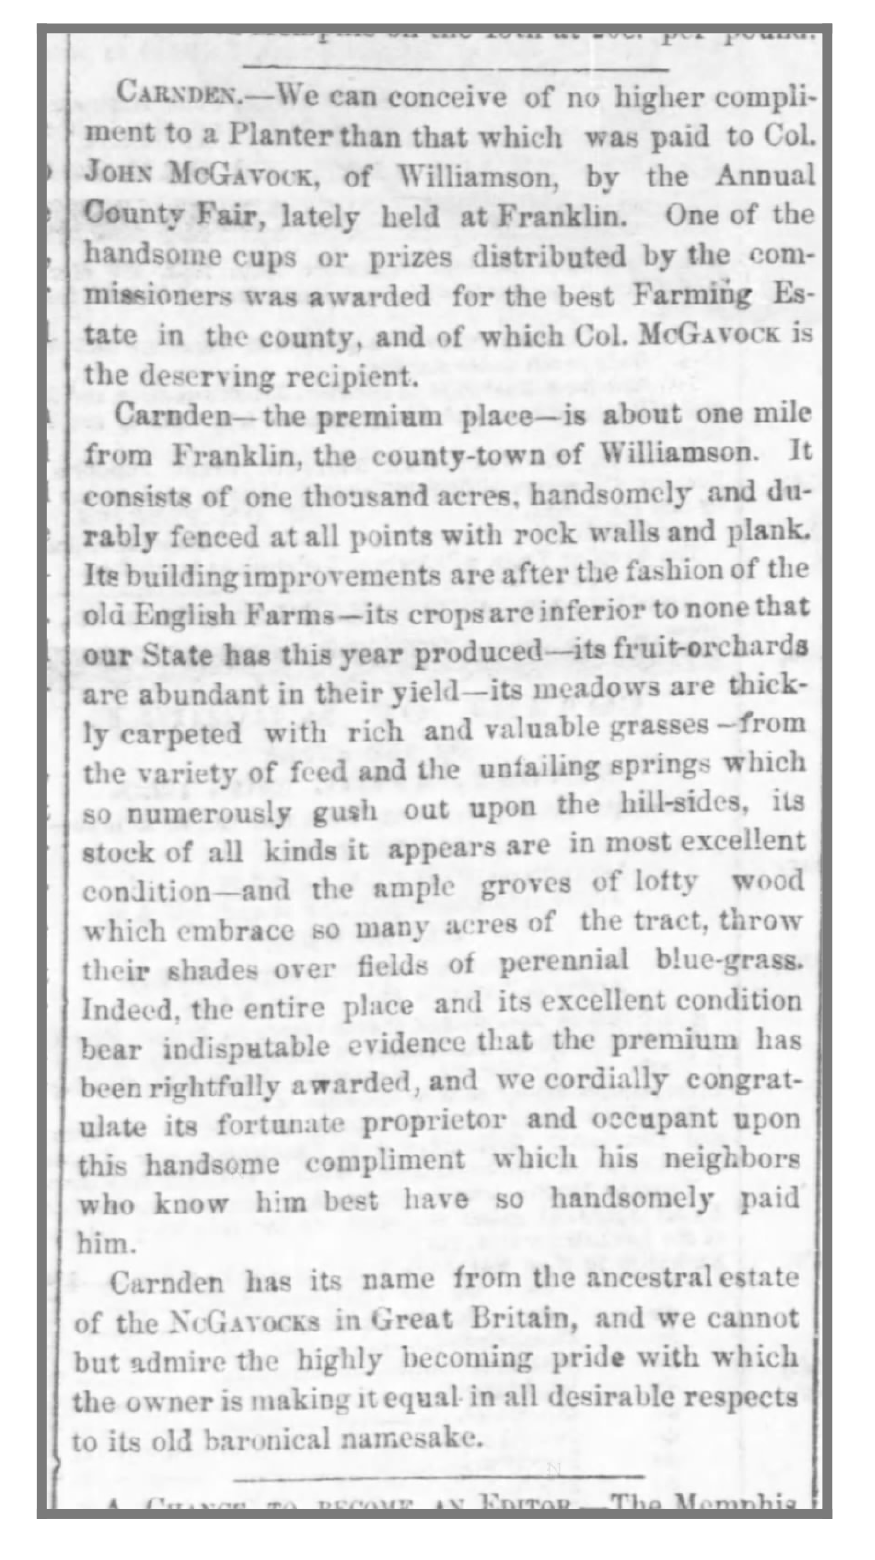 Nashville Union and American , October 19, 1860.